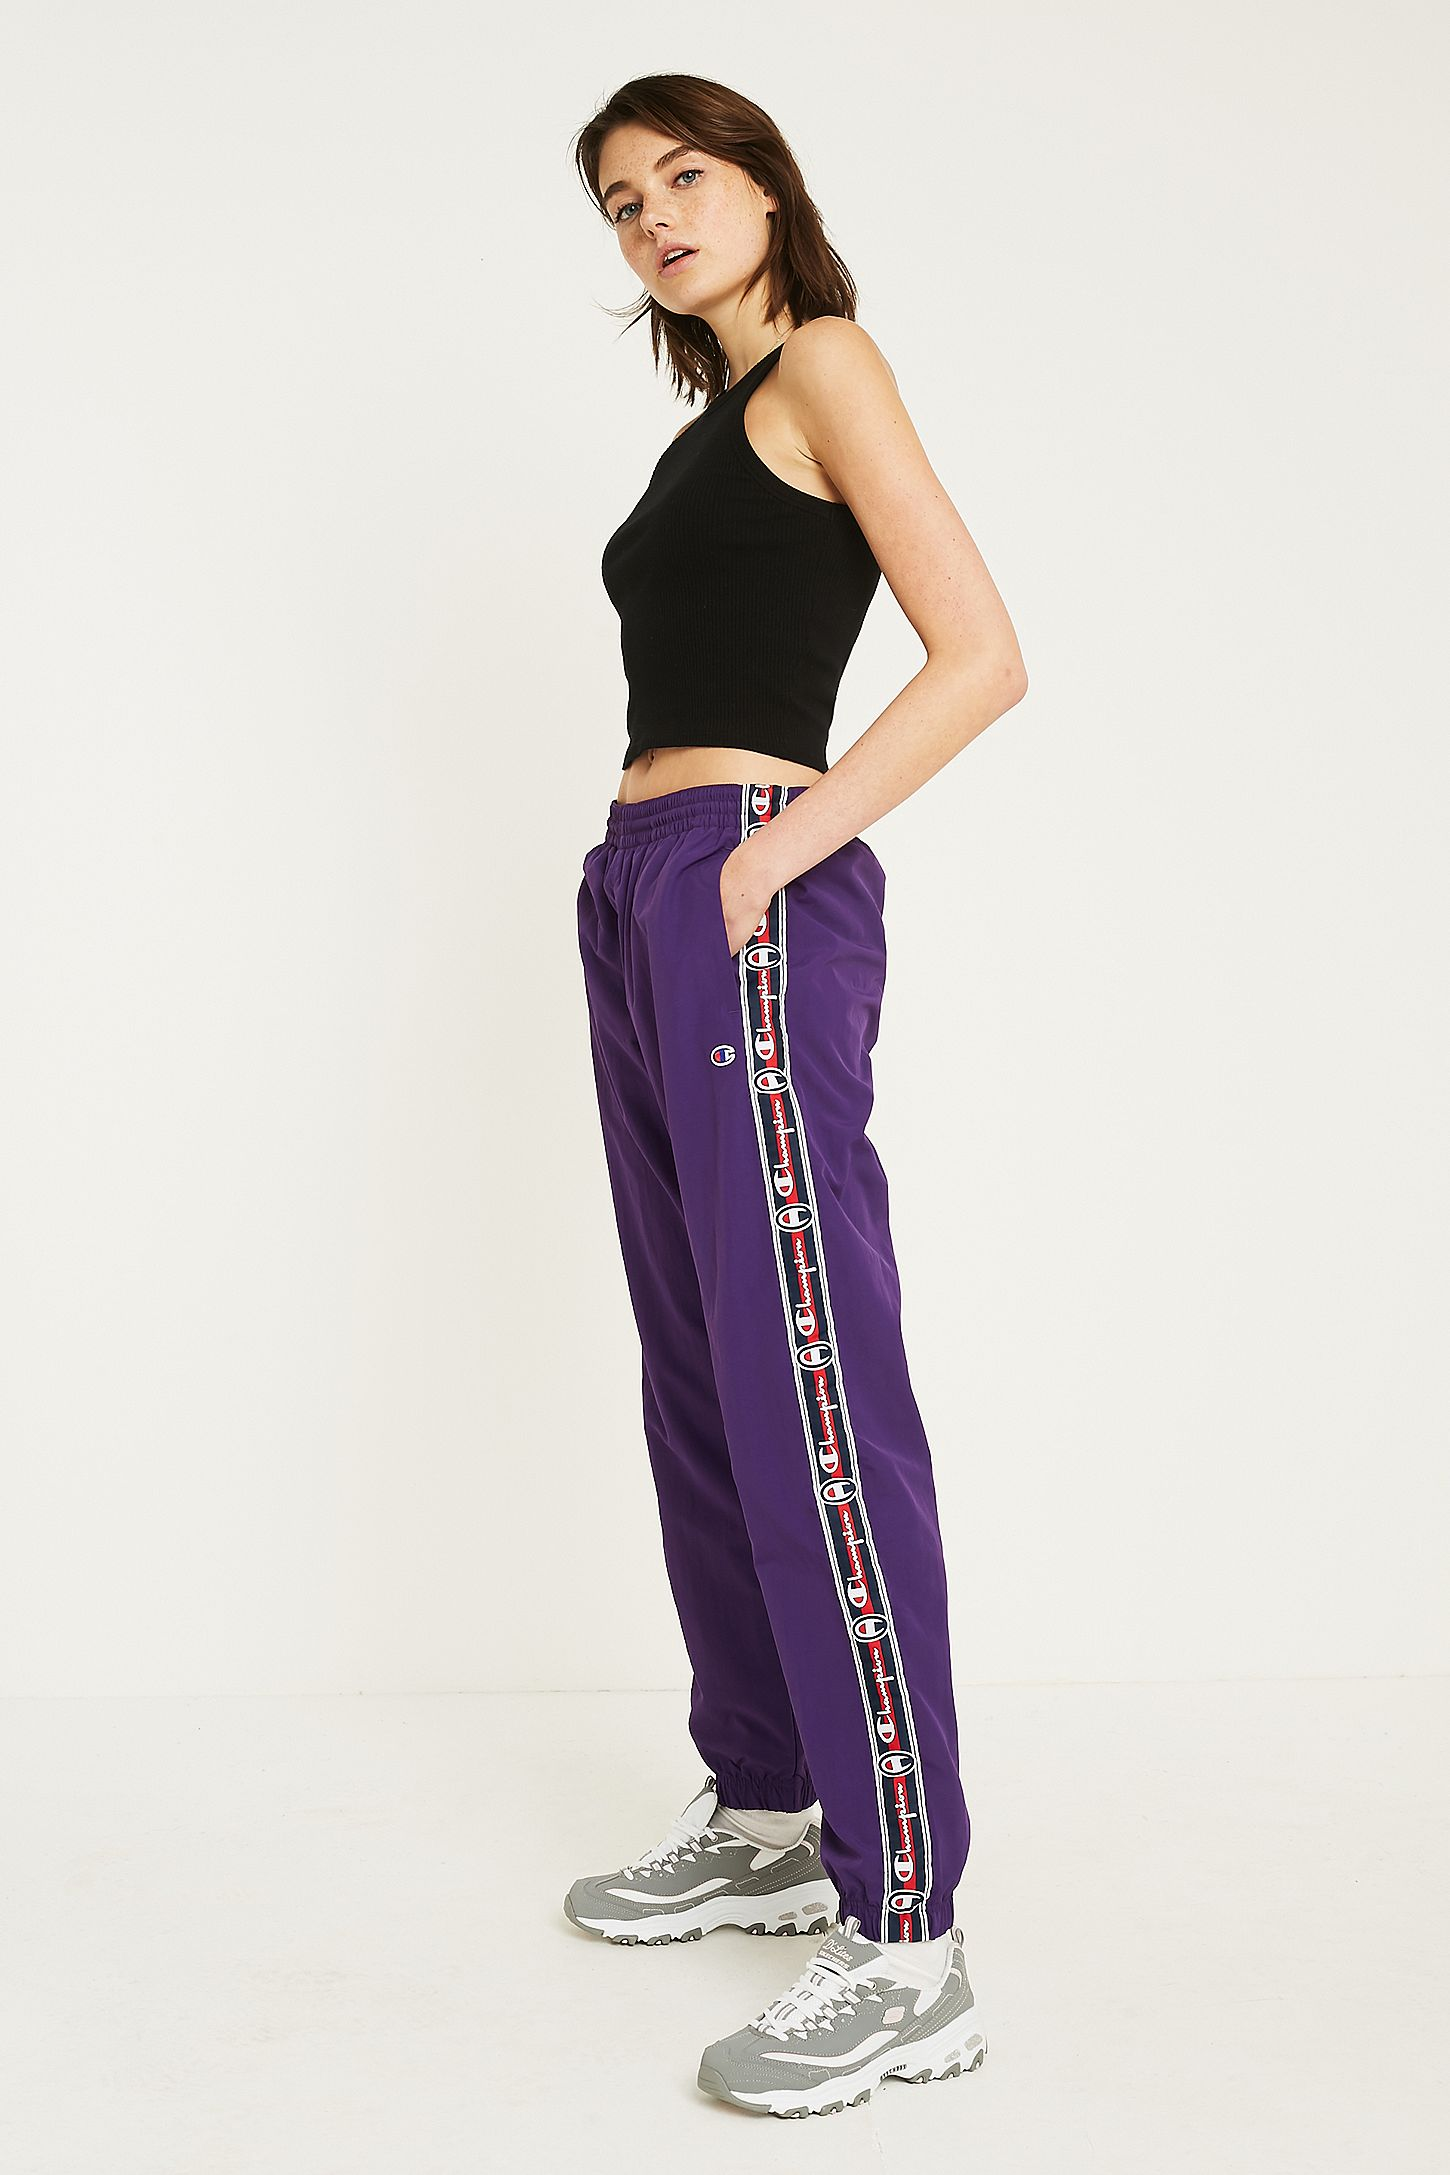 68d17c933c24 Champion Purple Taped Track Pant. Click on image to zoom. Hover to zoom.  Double Tap to Zoom